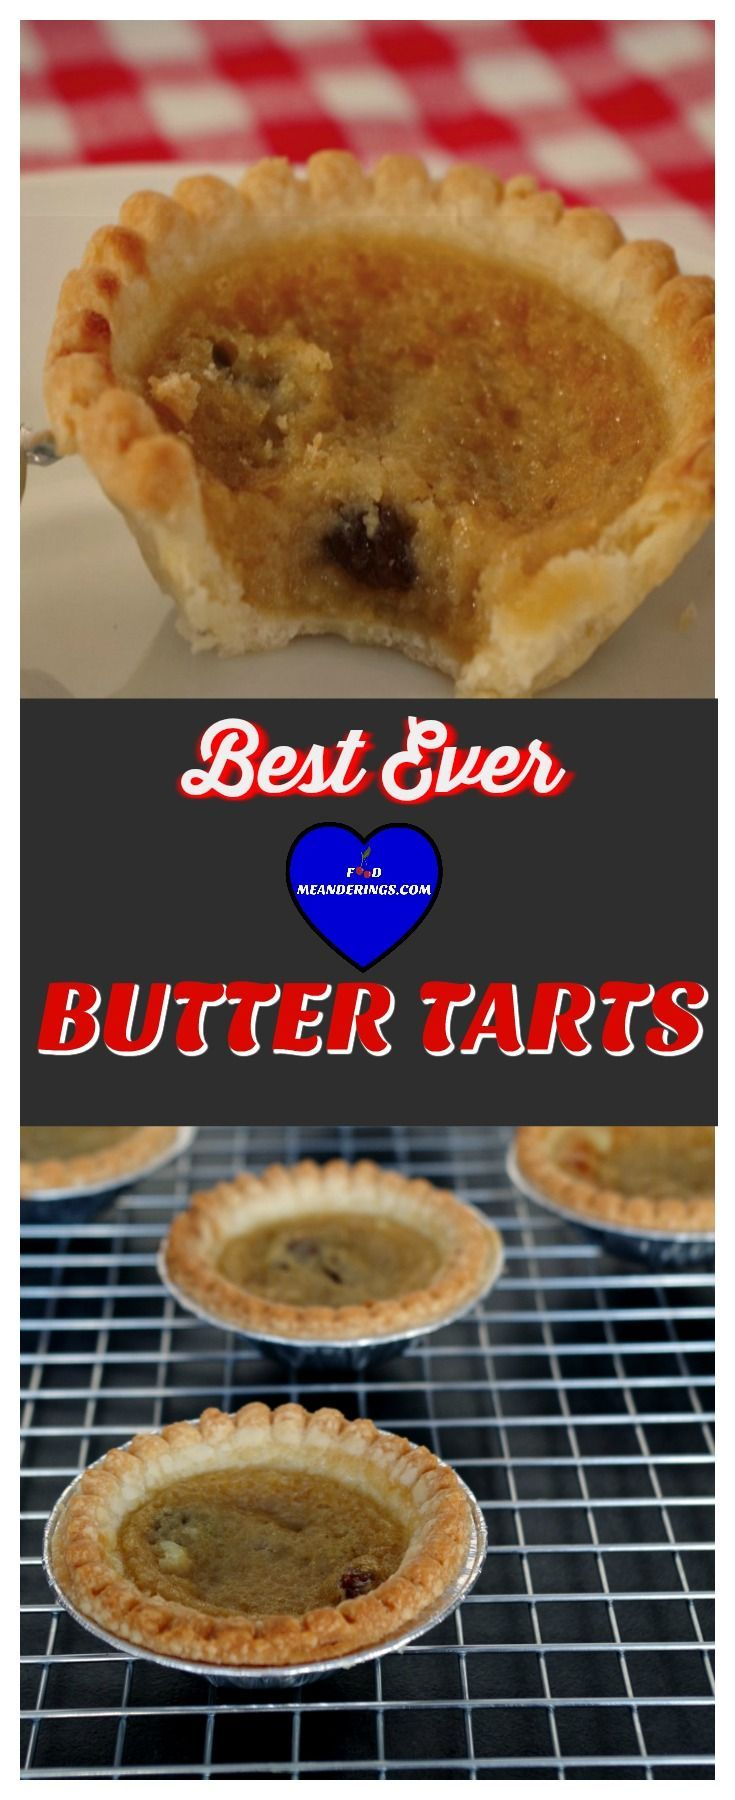 These are the best butter tarts ever! Use store-bought tart shells and make them in under 20 minutes! They are a great addition to your holiday baking tray.